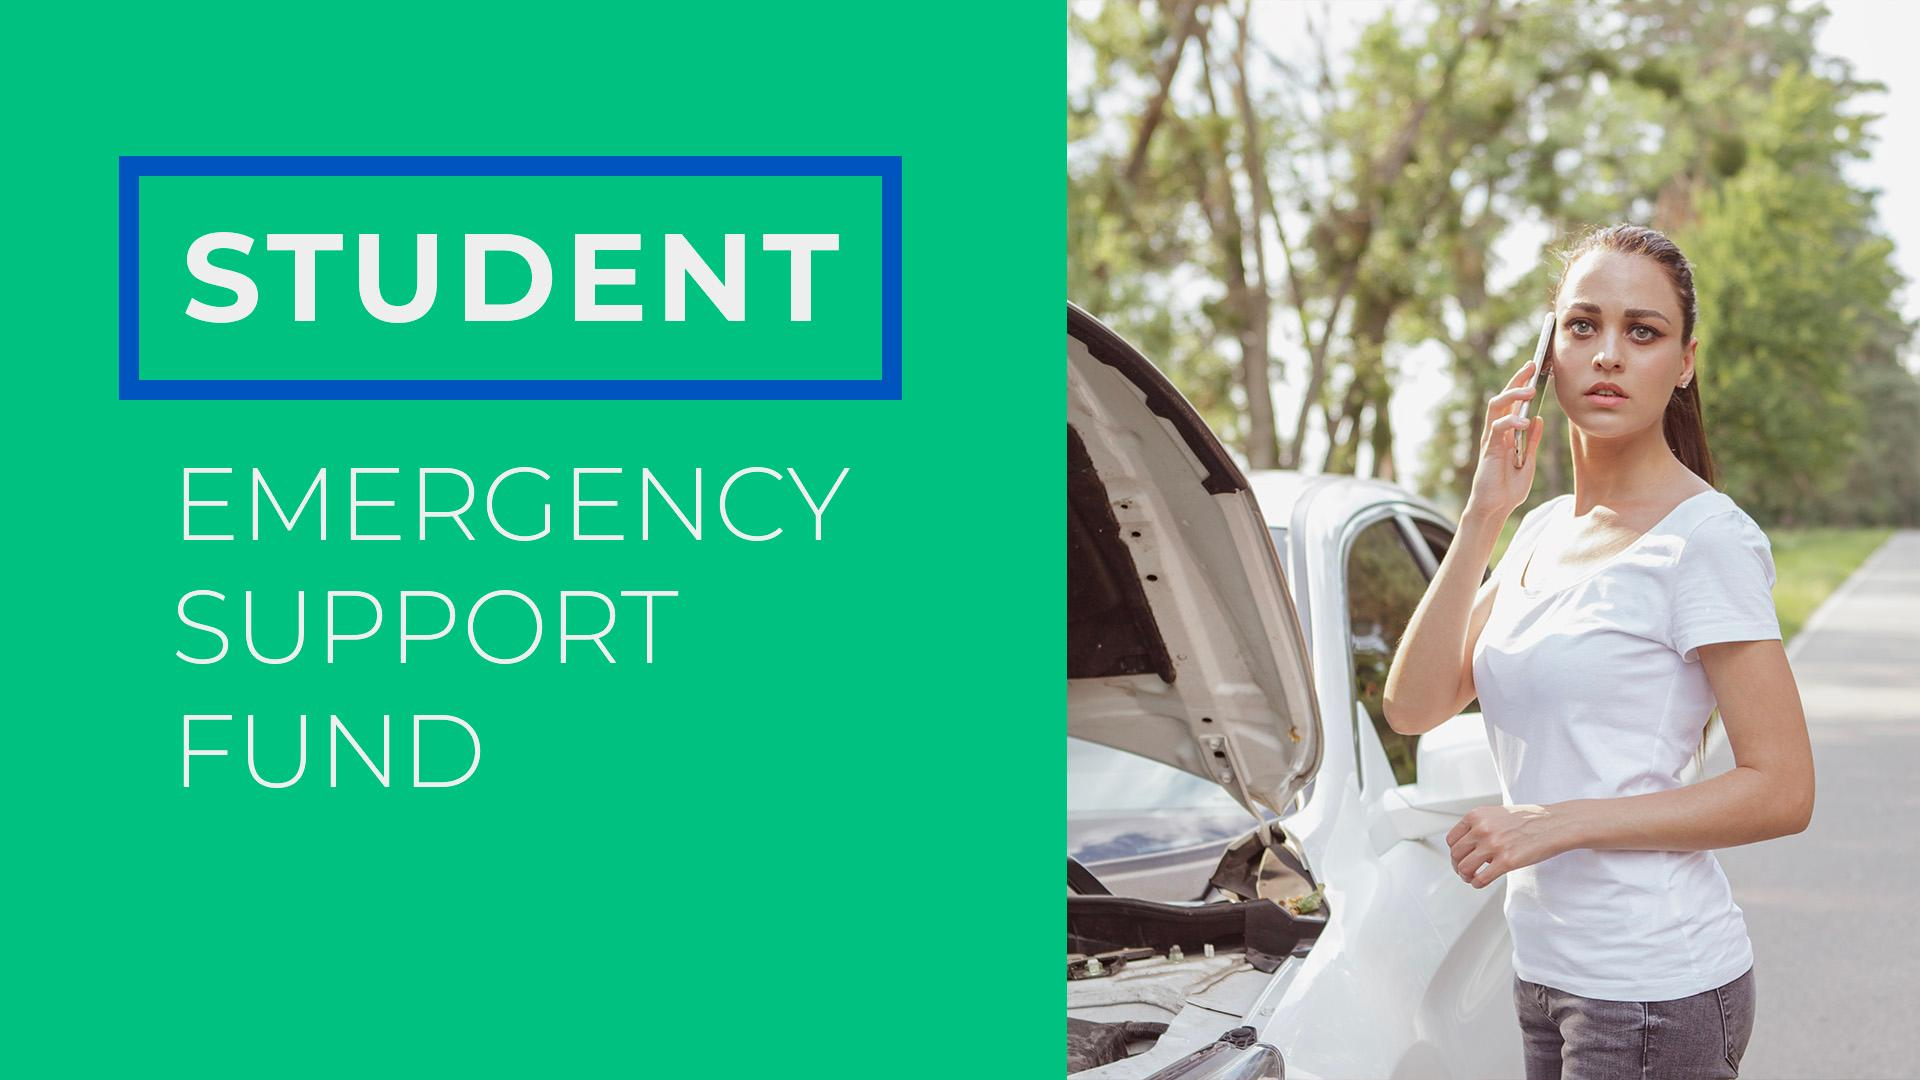 Click here to learn about the Student Emergency Support Fund